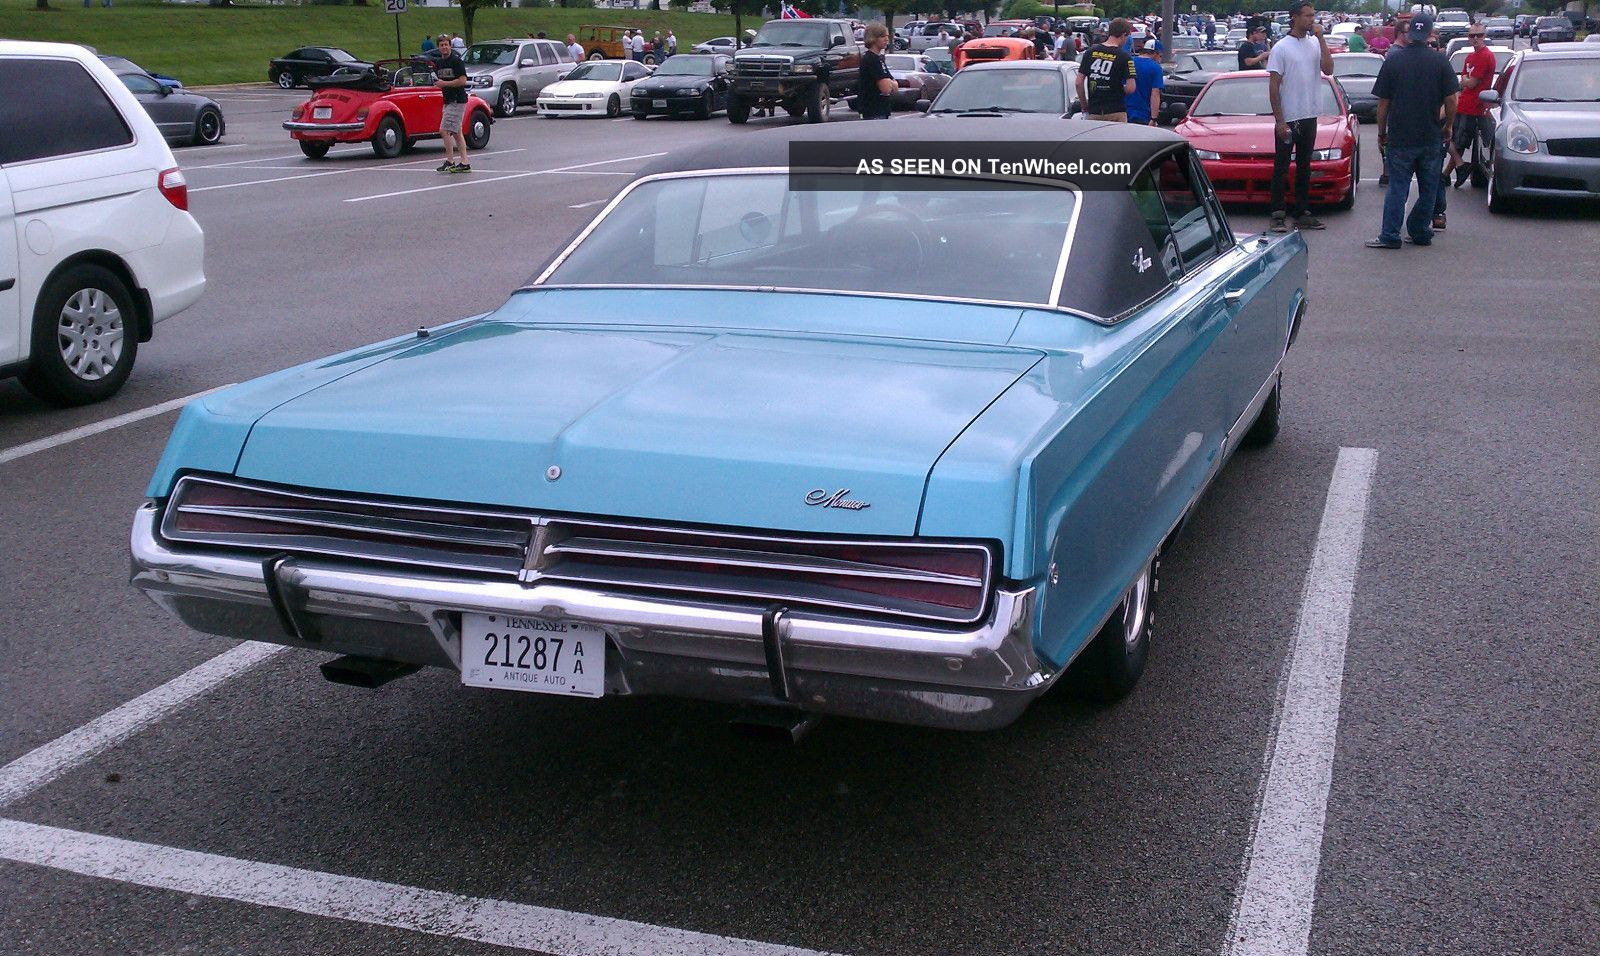 Cars For Sale At Canada: Mopar Cars For Sale In Canada.html